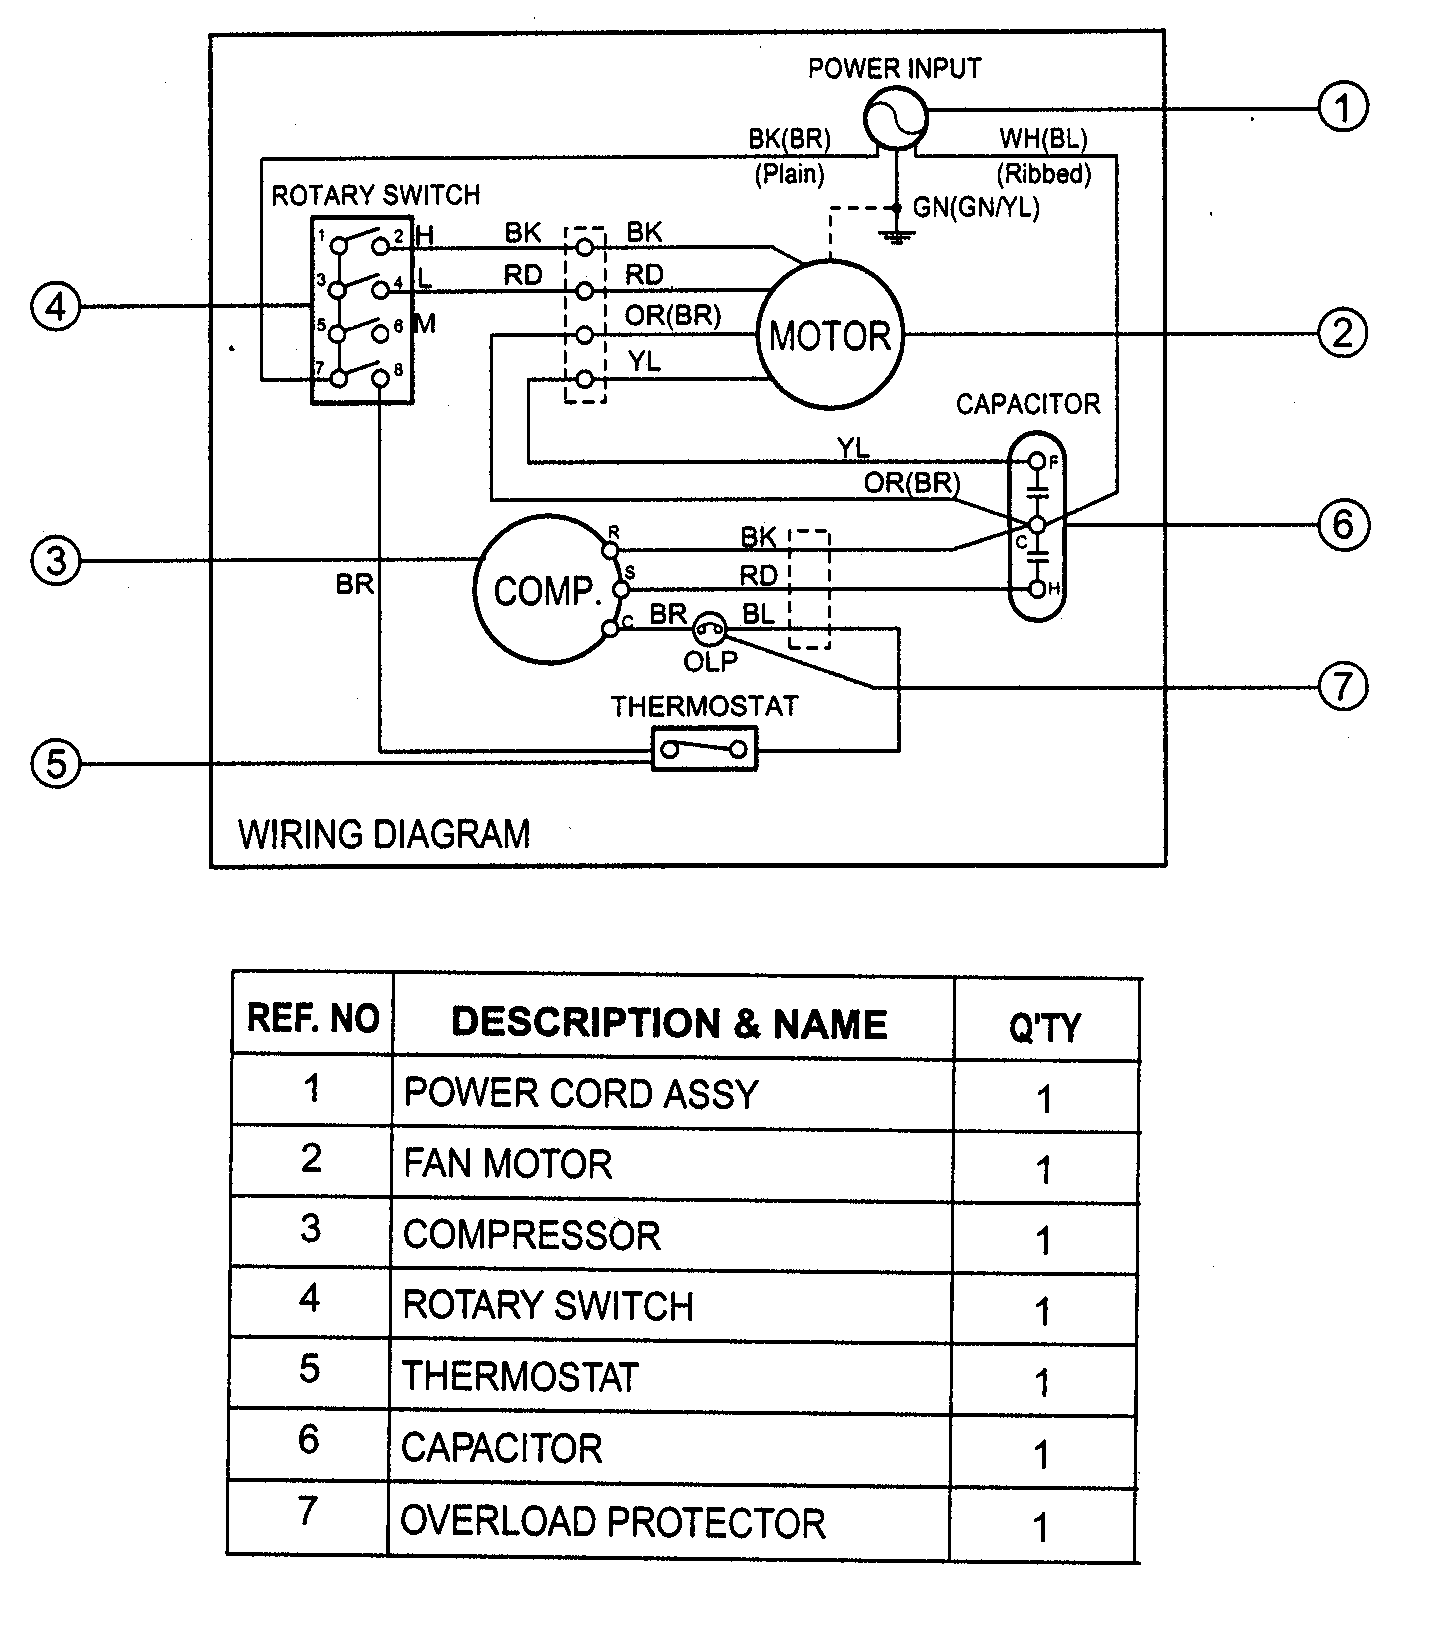 hight resolution of  dometic dometic 3 wire thermostat with controll kit wiring diagram on dometic thermostat manual dometic duo